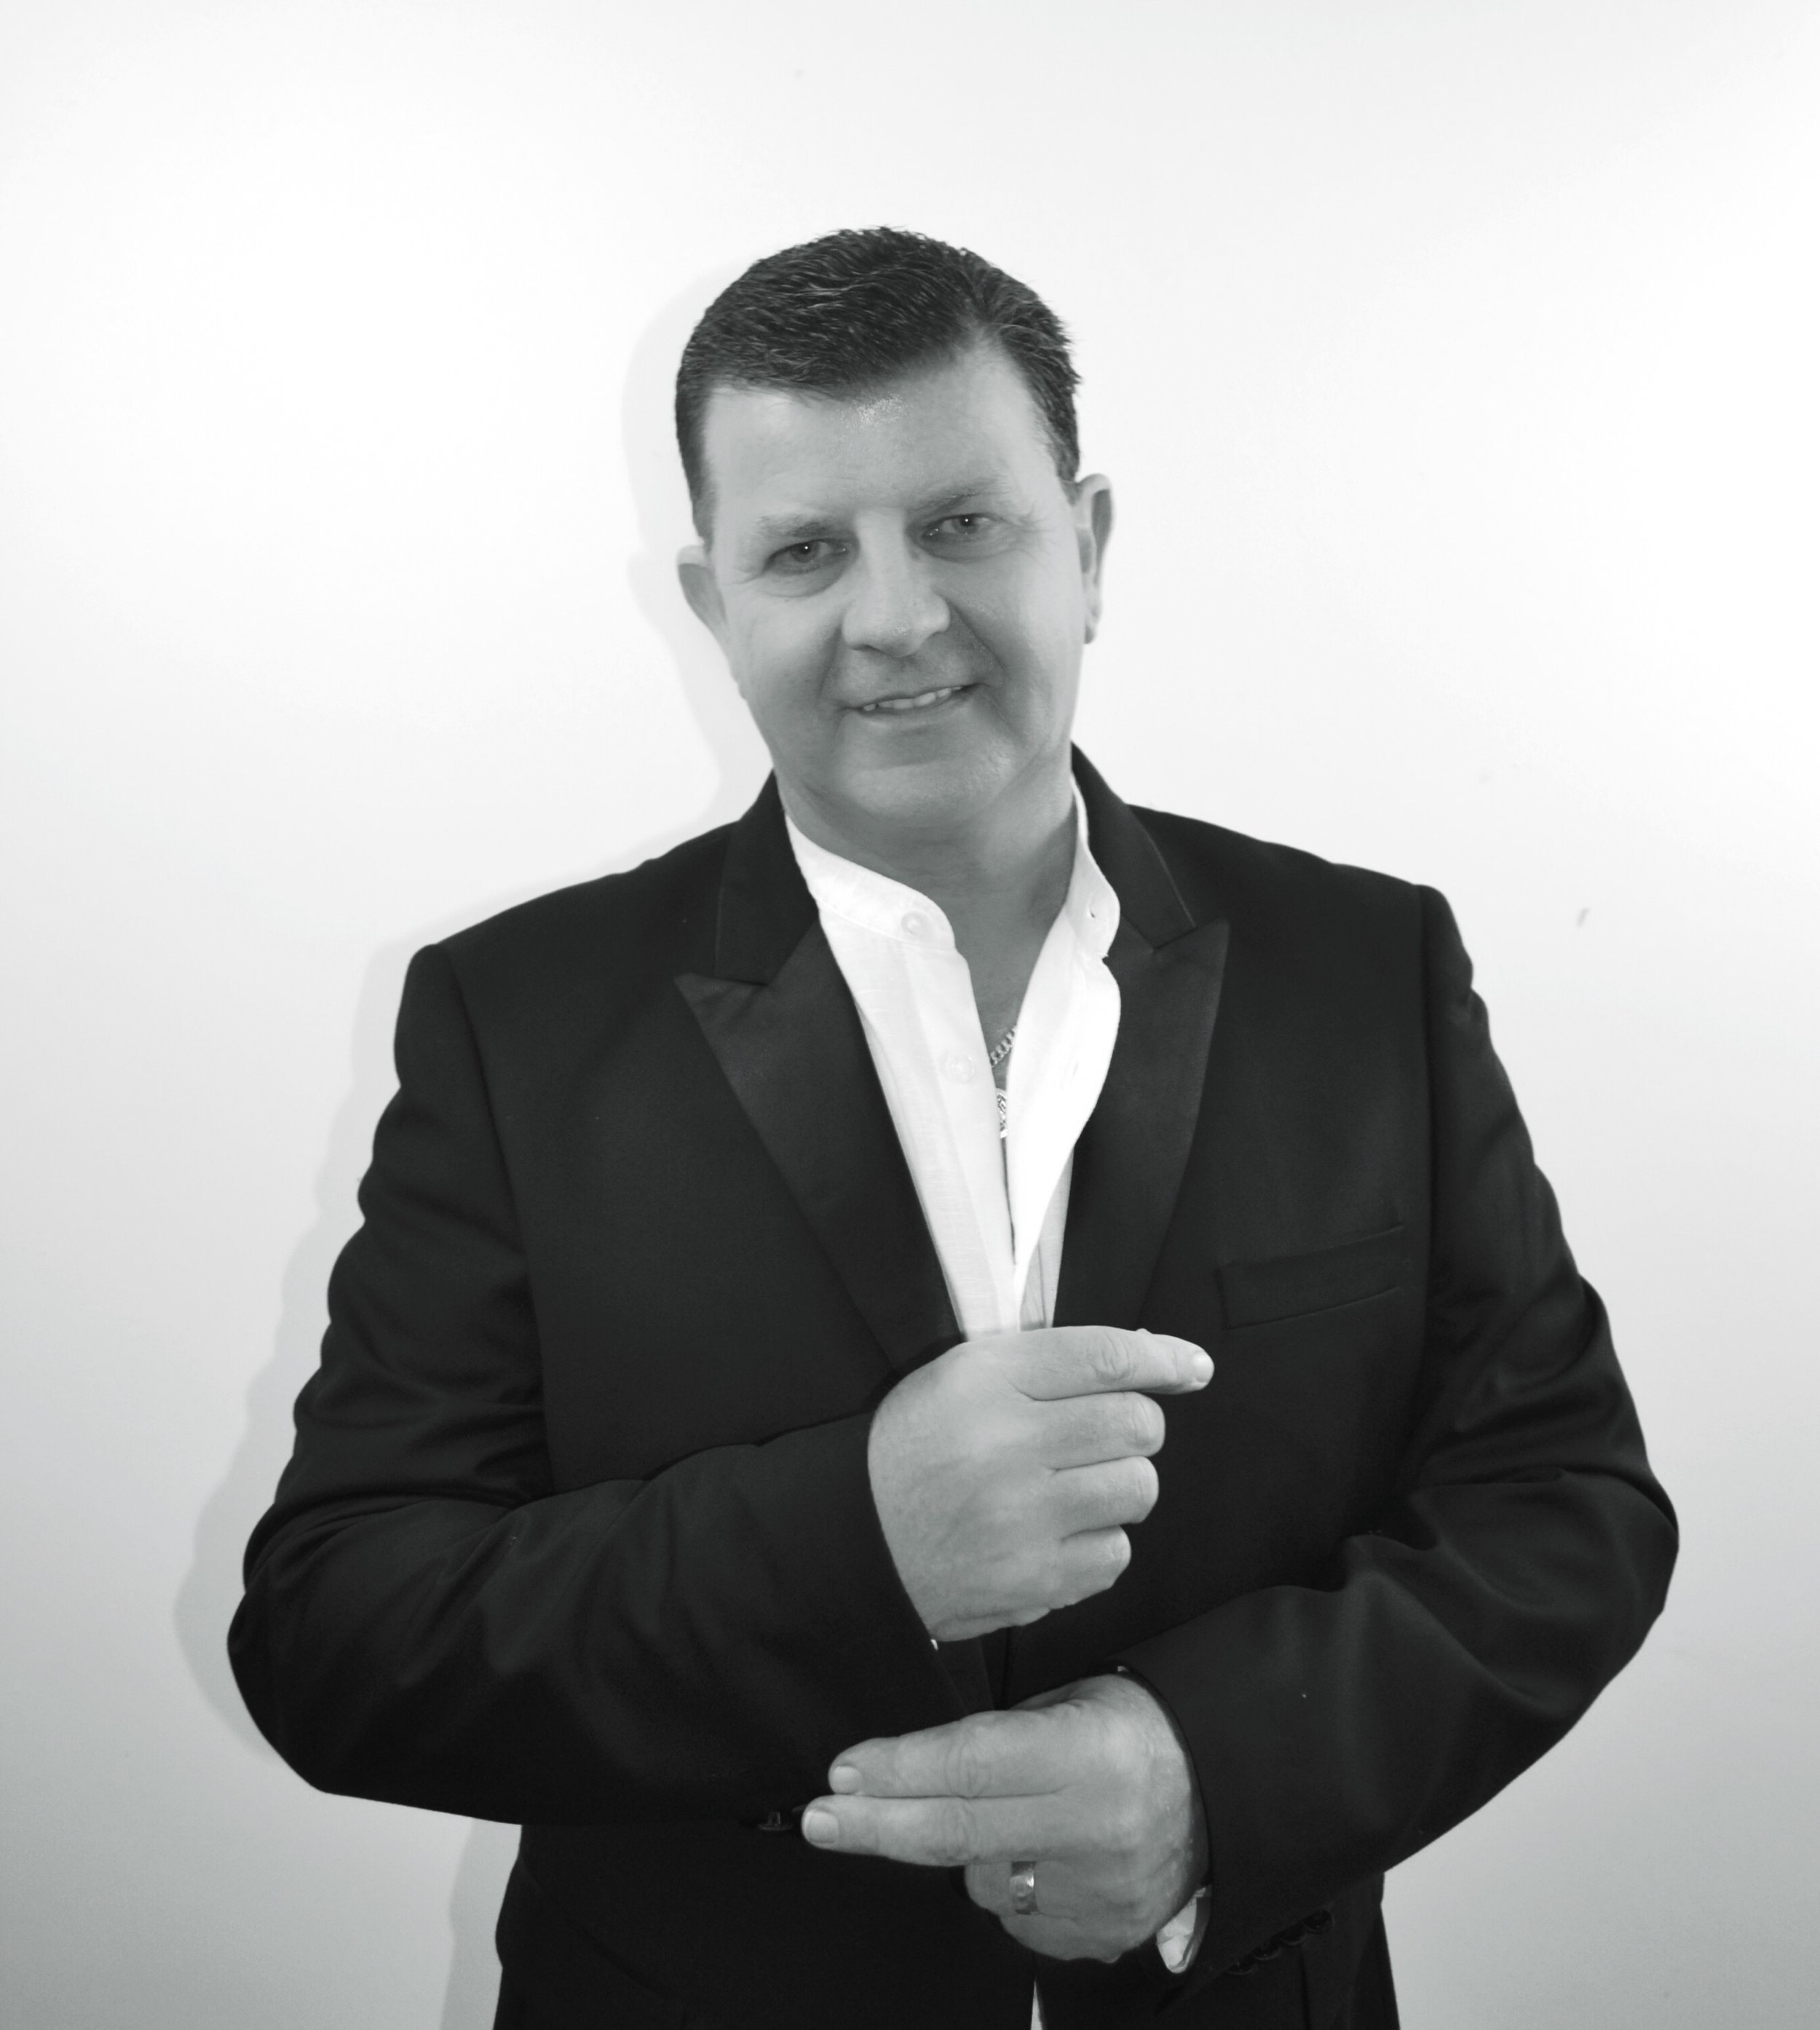 Cabaret Show - kirk has such a broad repertoire of material FROM COUNTRY, BALLADS, 60'S 70'S, ROCK AND pop WITH MOTOWN, MUSICALS AND is happy to take REQUESTs